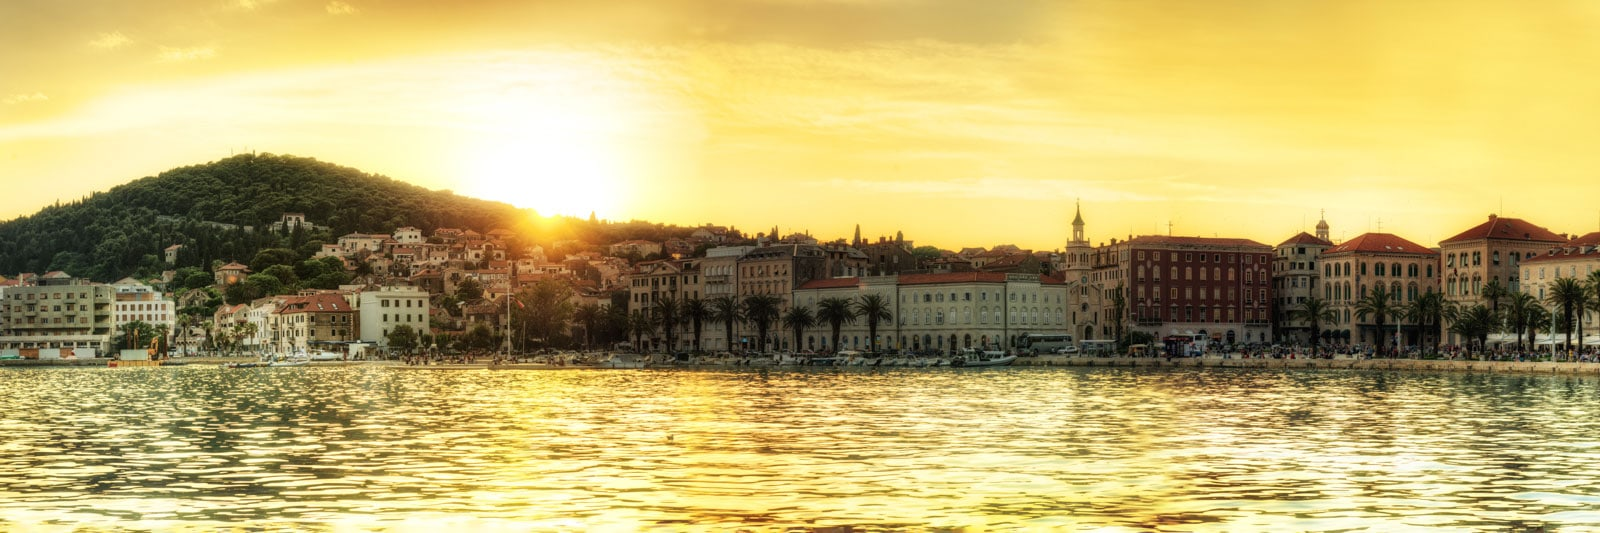 Spring in Dalmatia | Split, Croatia